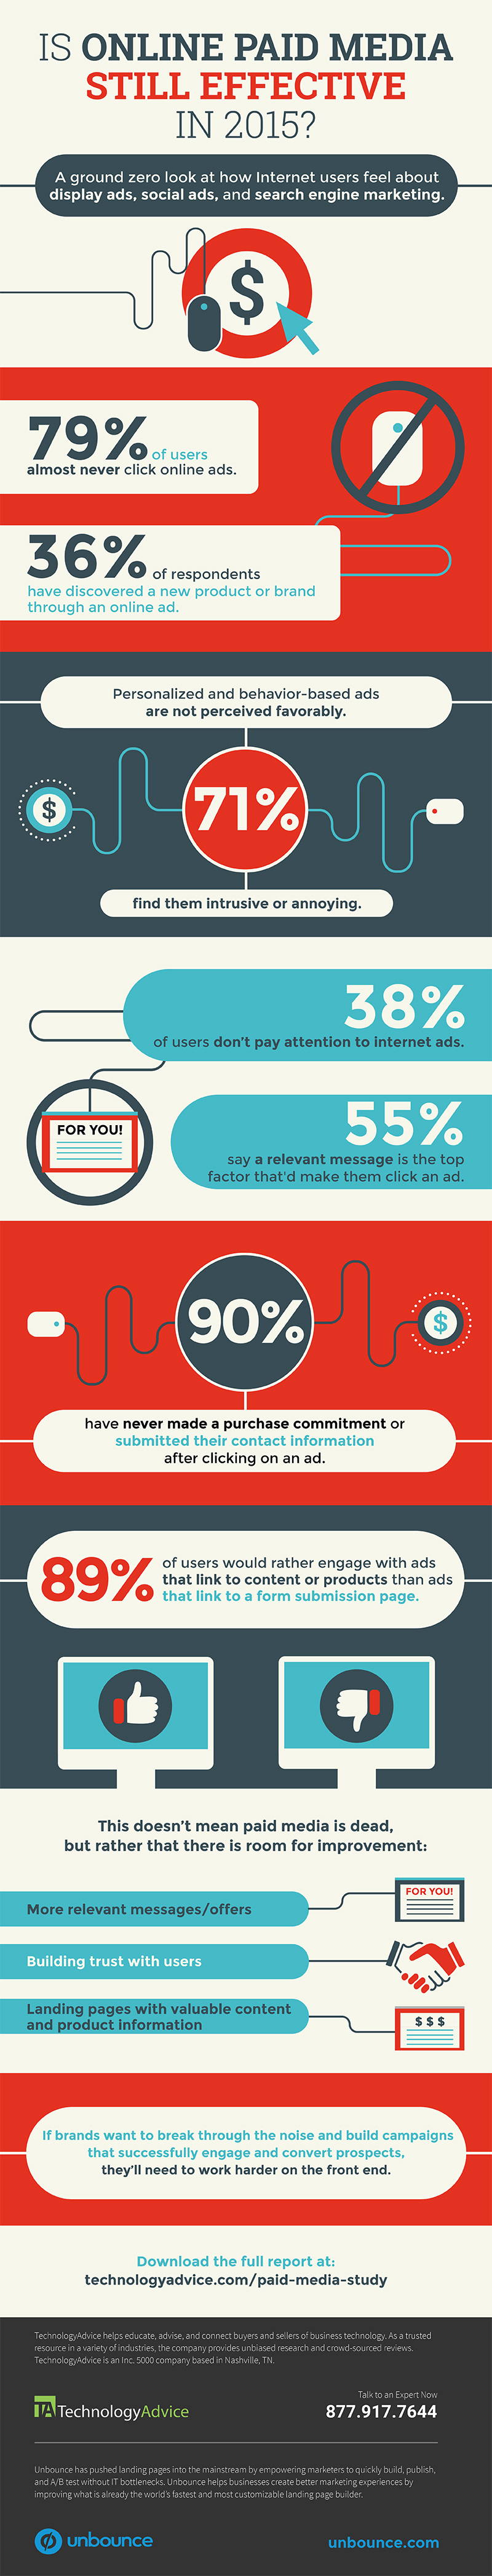 online-paid-media-infographic